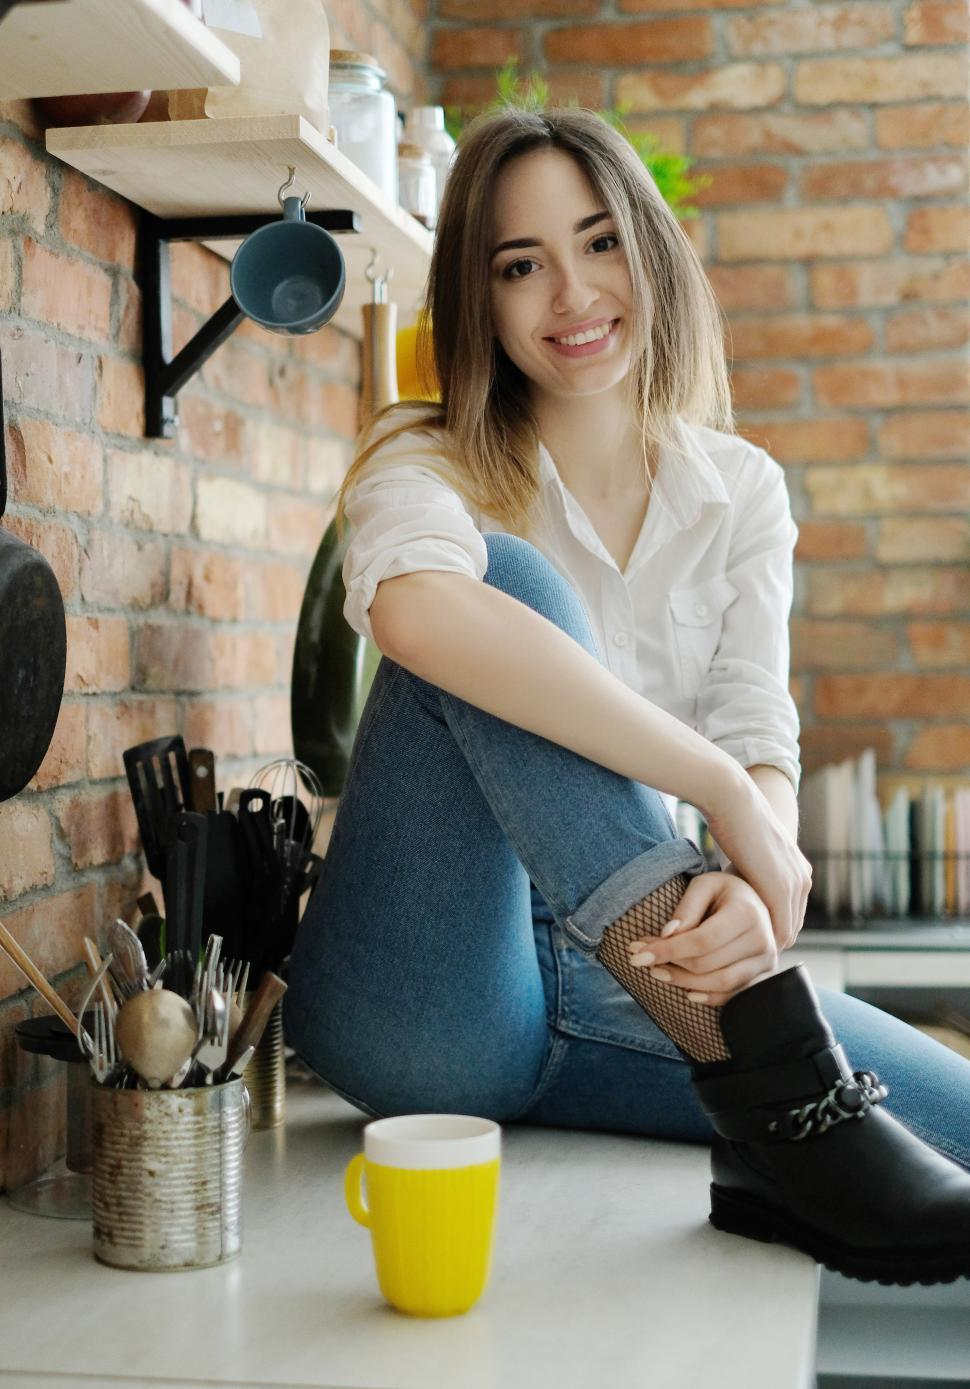 Download Free Stock Photo of Woman sitting on her kitchen counter